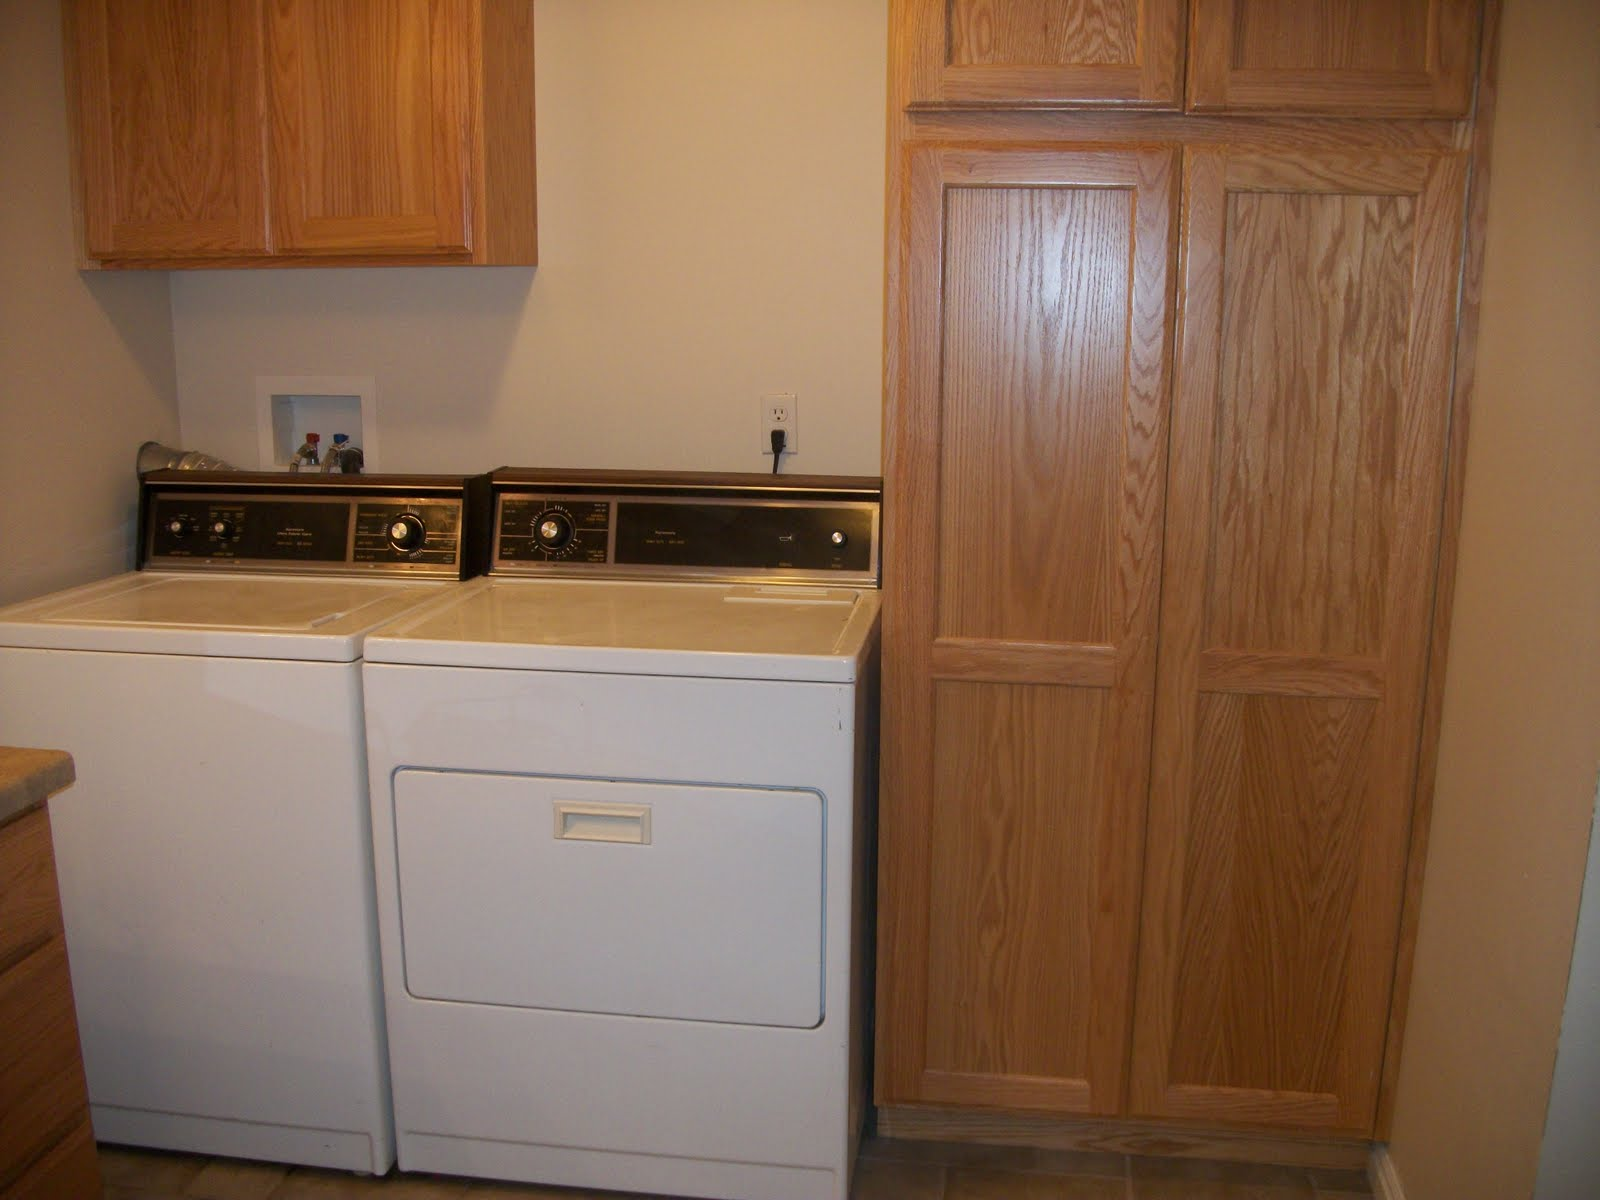 Downstairs Bathroom Laundry Room Combo. The Perfect Home Now  Downstairs Bathroom Laundry Room Combo